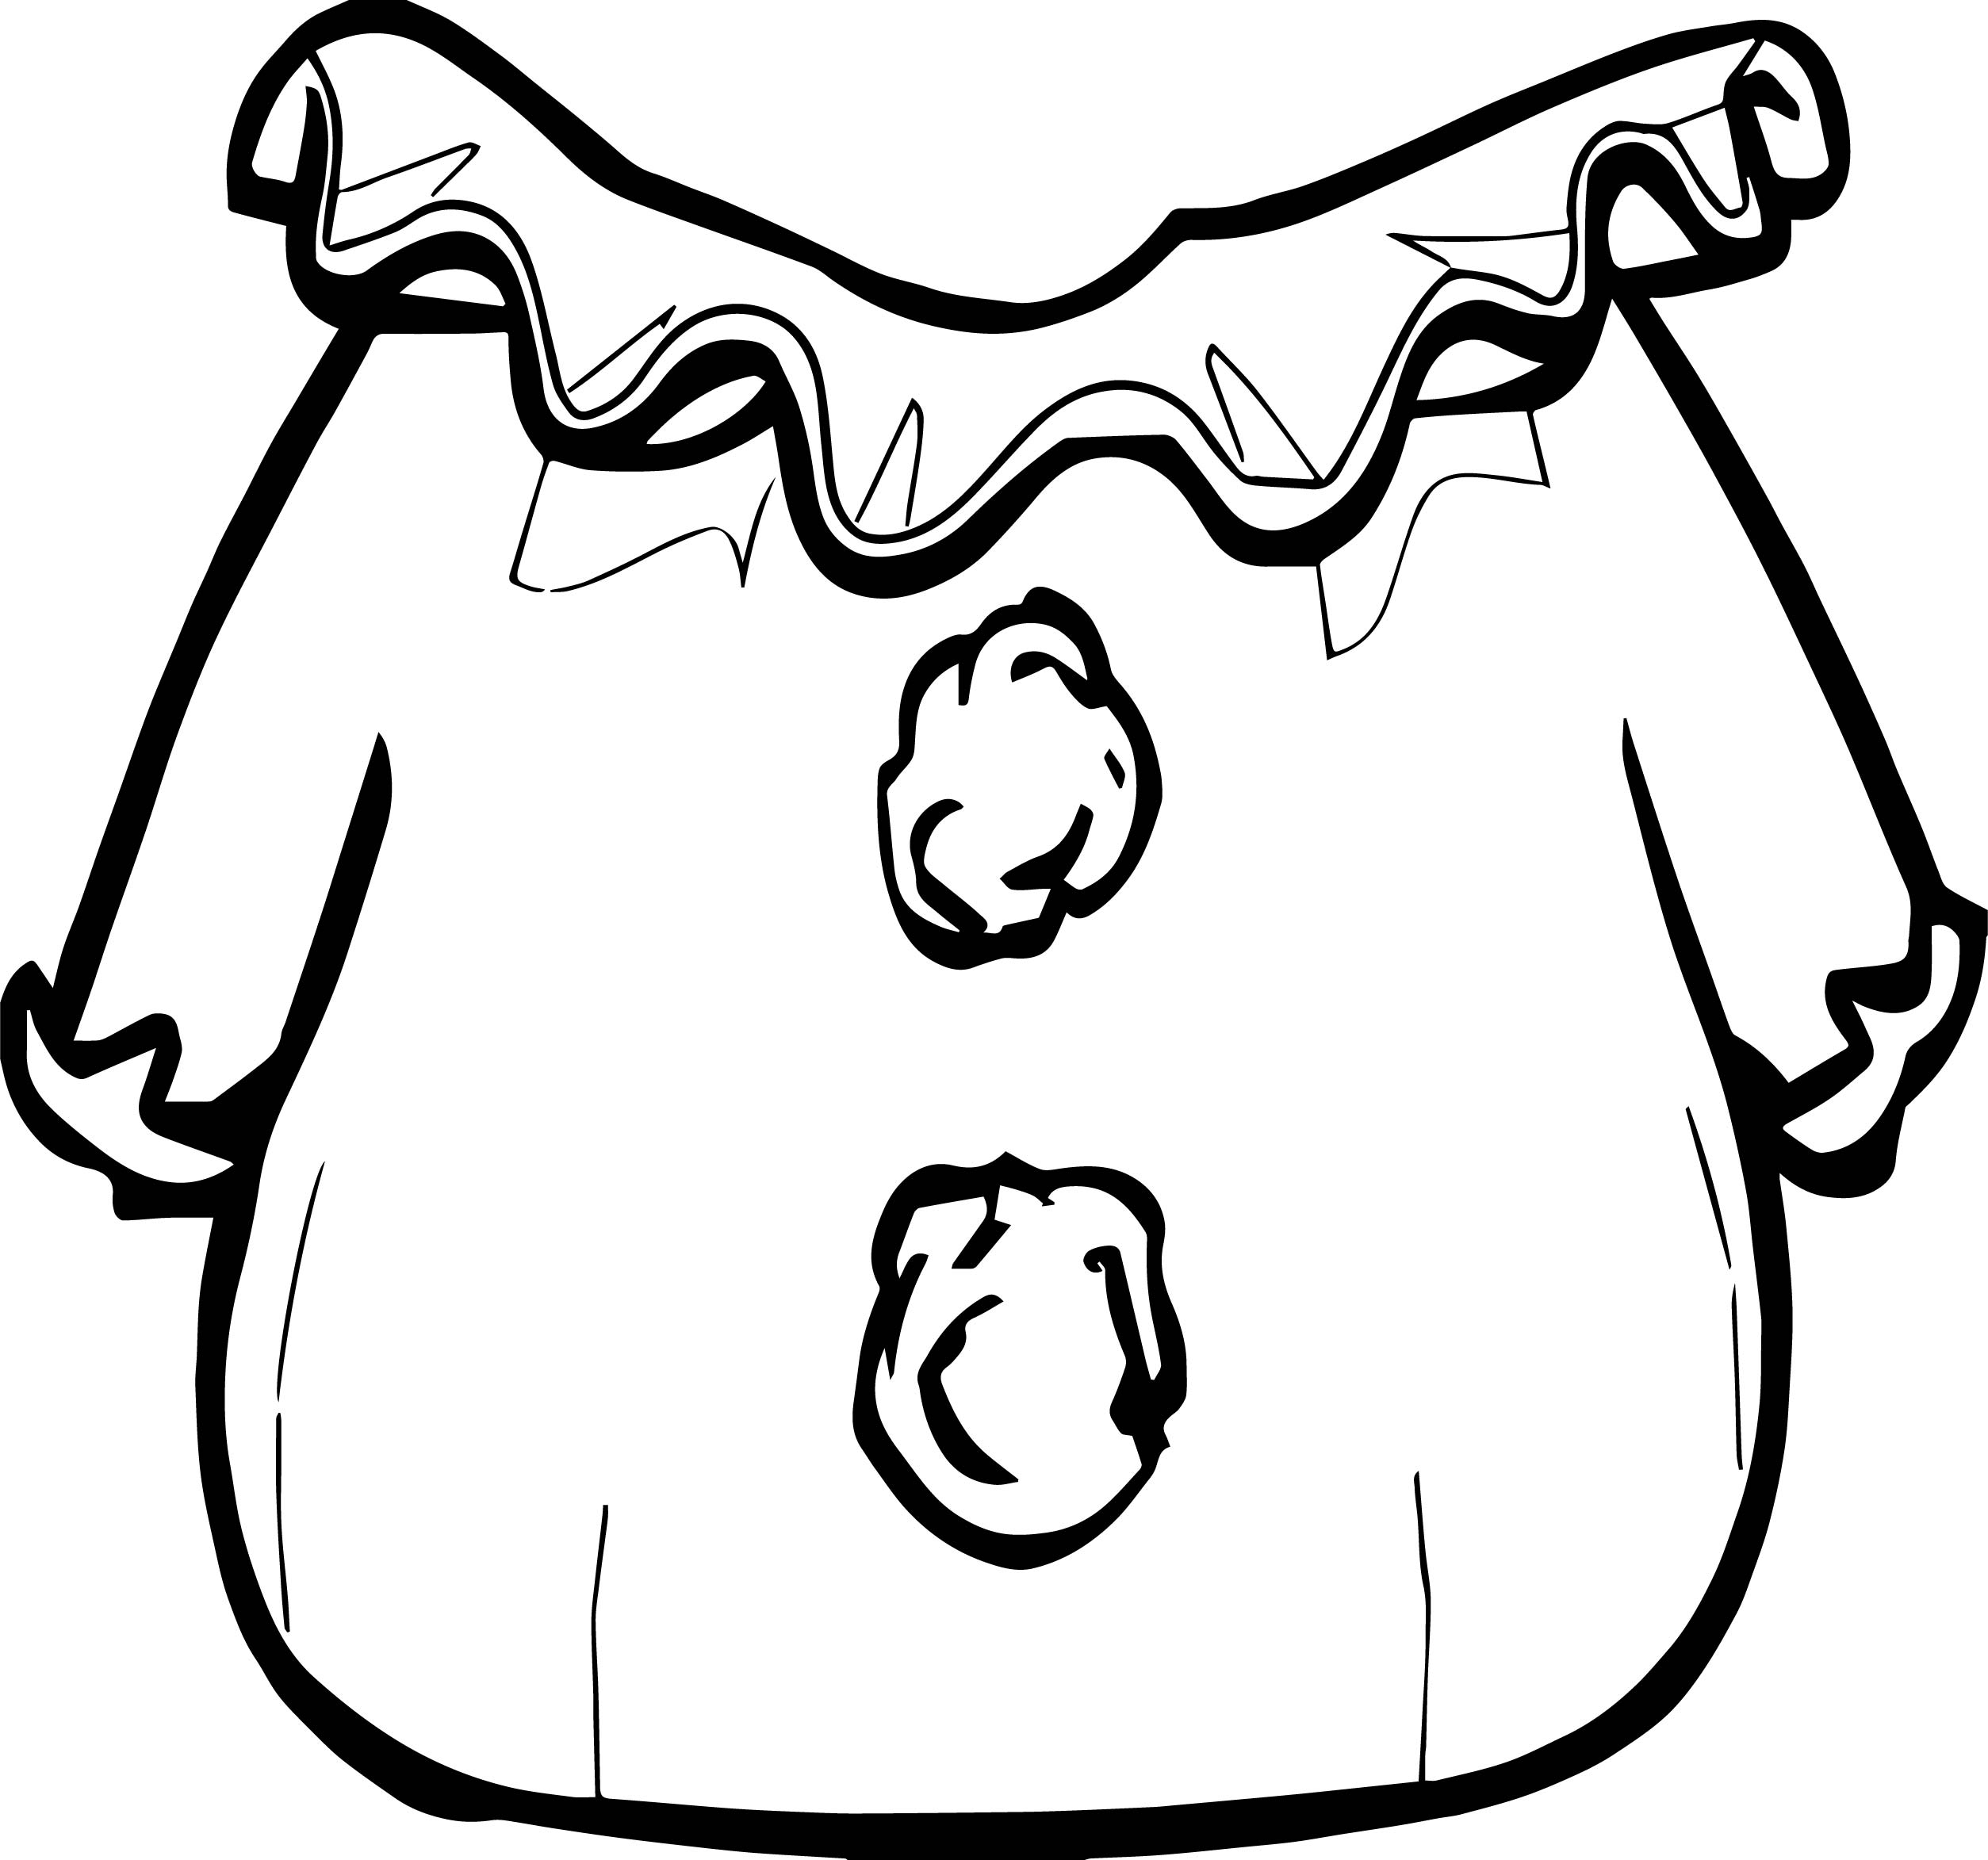 Clown Suit Clothing Coloring Page